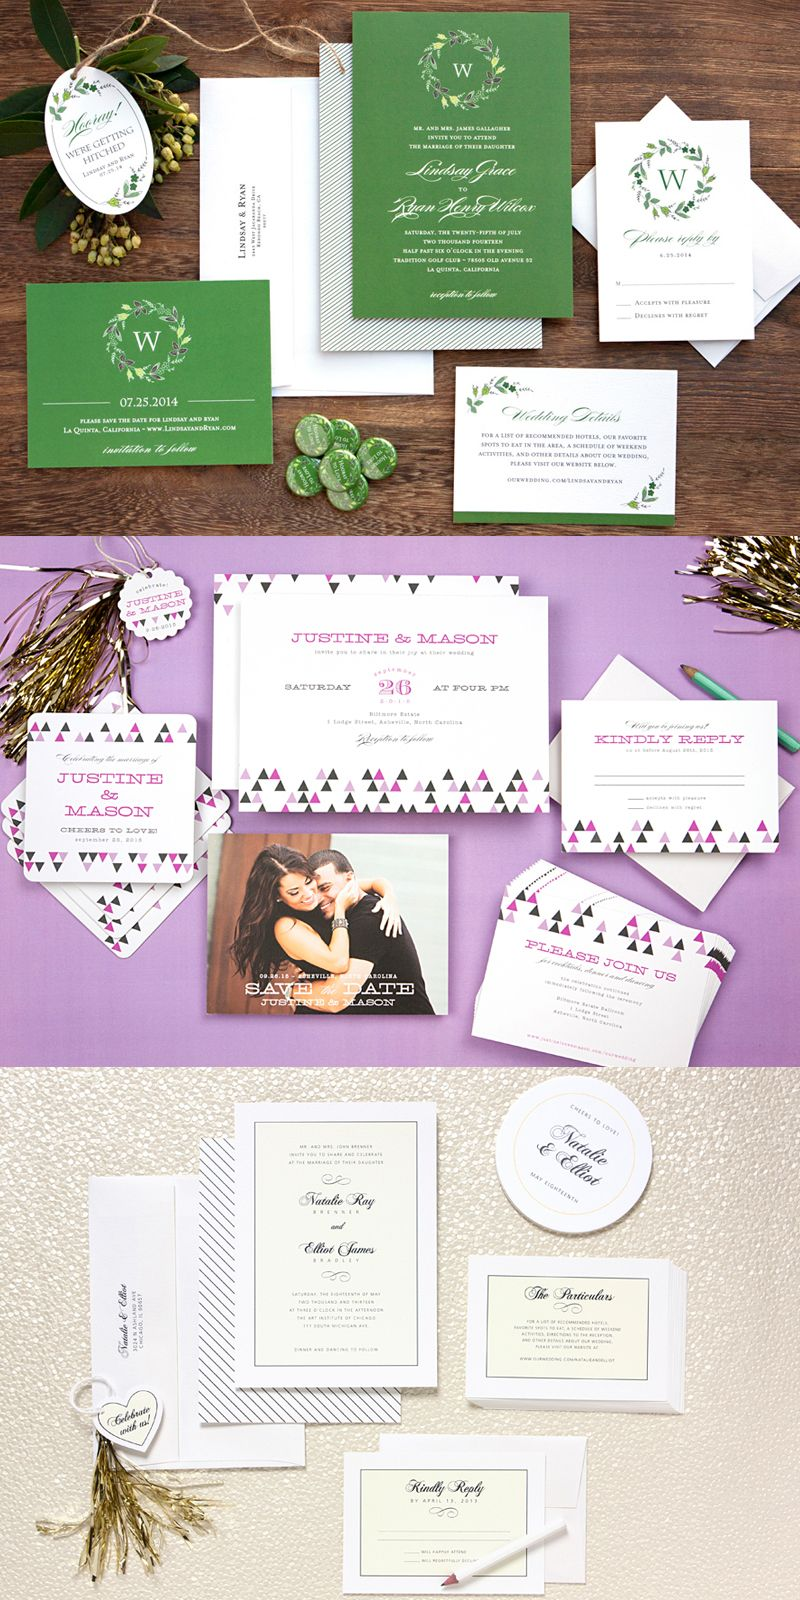 40+ Beautiful Wedding Invitation Wedding Invitation Cards & Kit Ideas